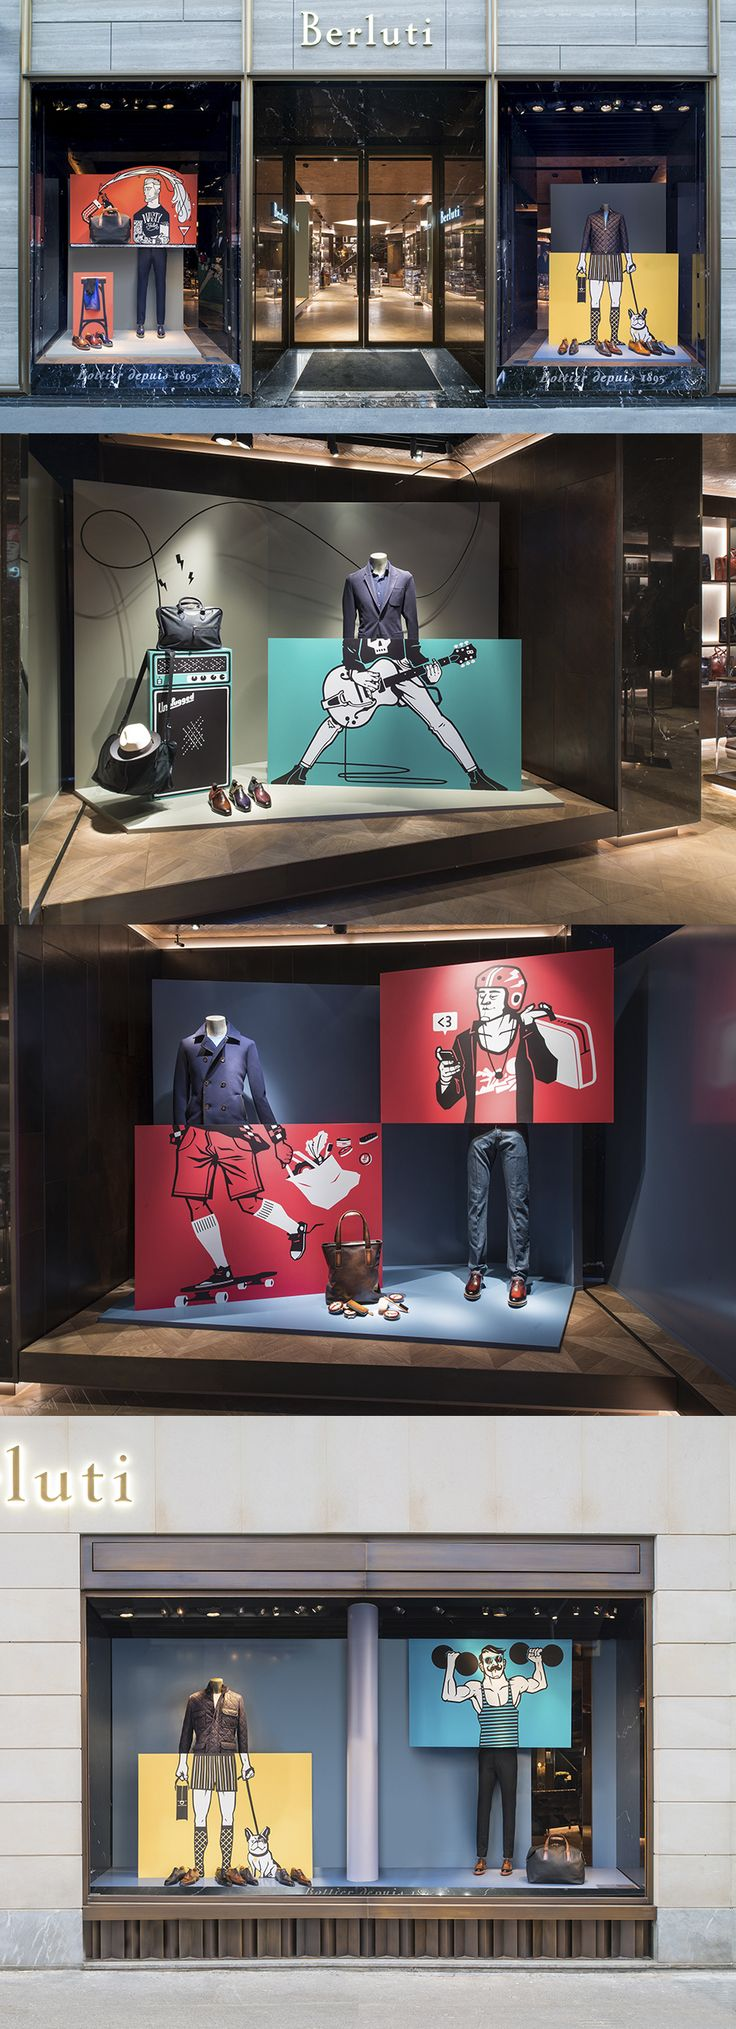 Illustrations for Berluti store´s window display                                                                                                                                                                                 More